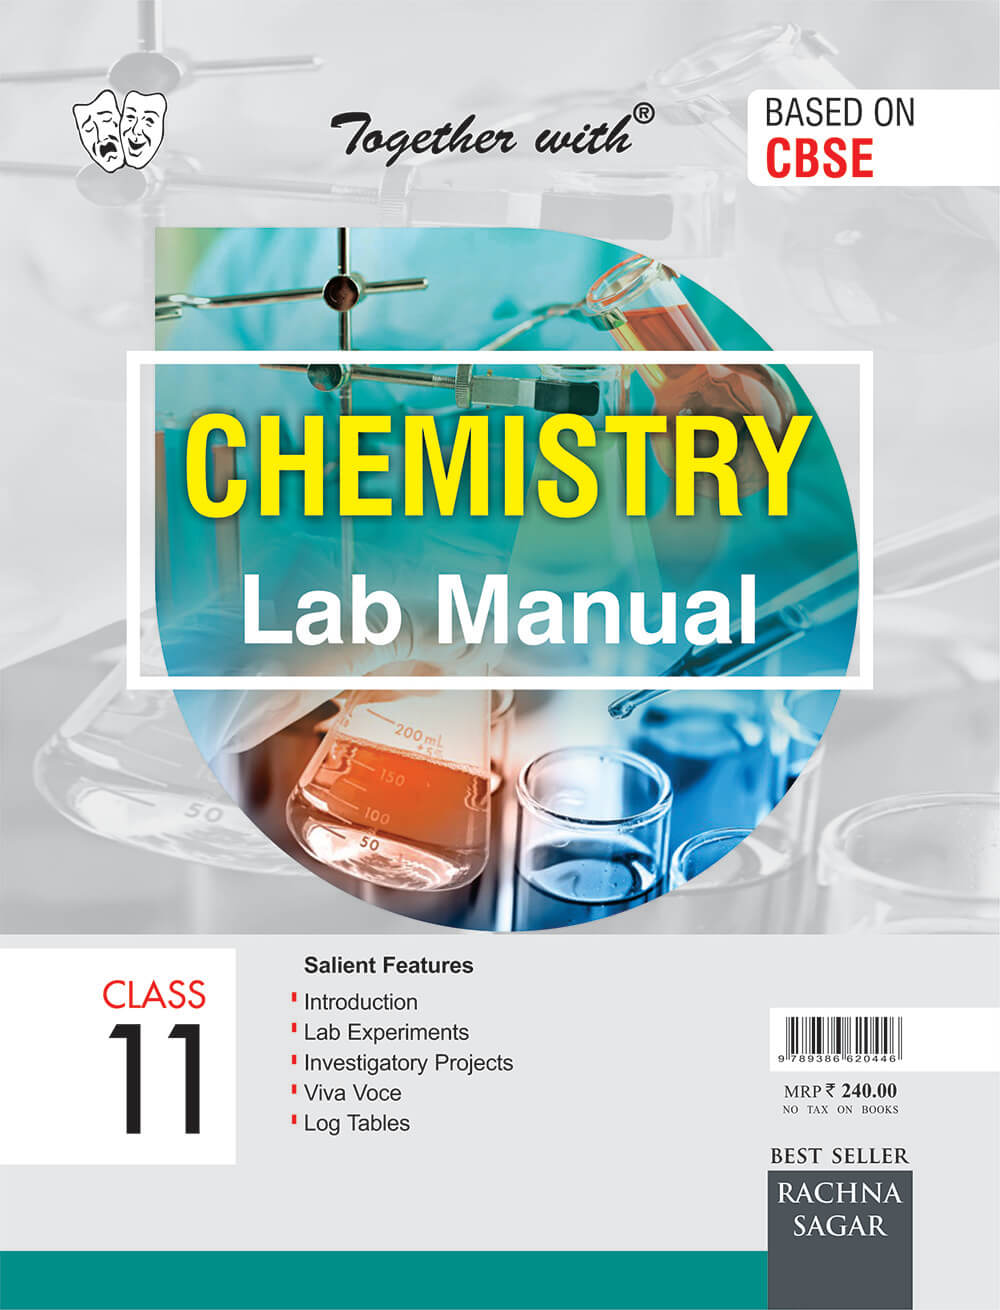 Together With Lab Manual Chemistry for Class 11 with Practical Manual by  Veena Suri